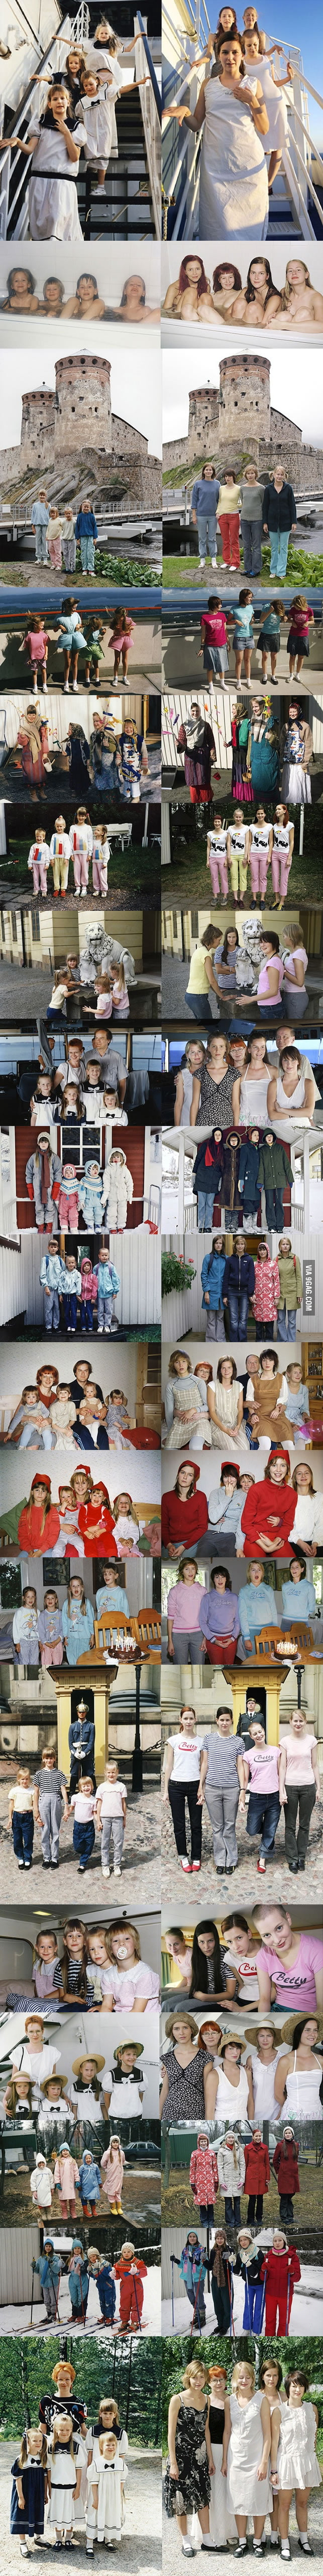 Four Sisters Recreating Their Childhood Photos